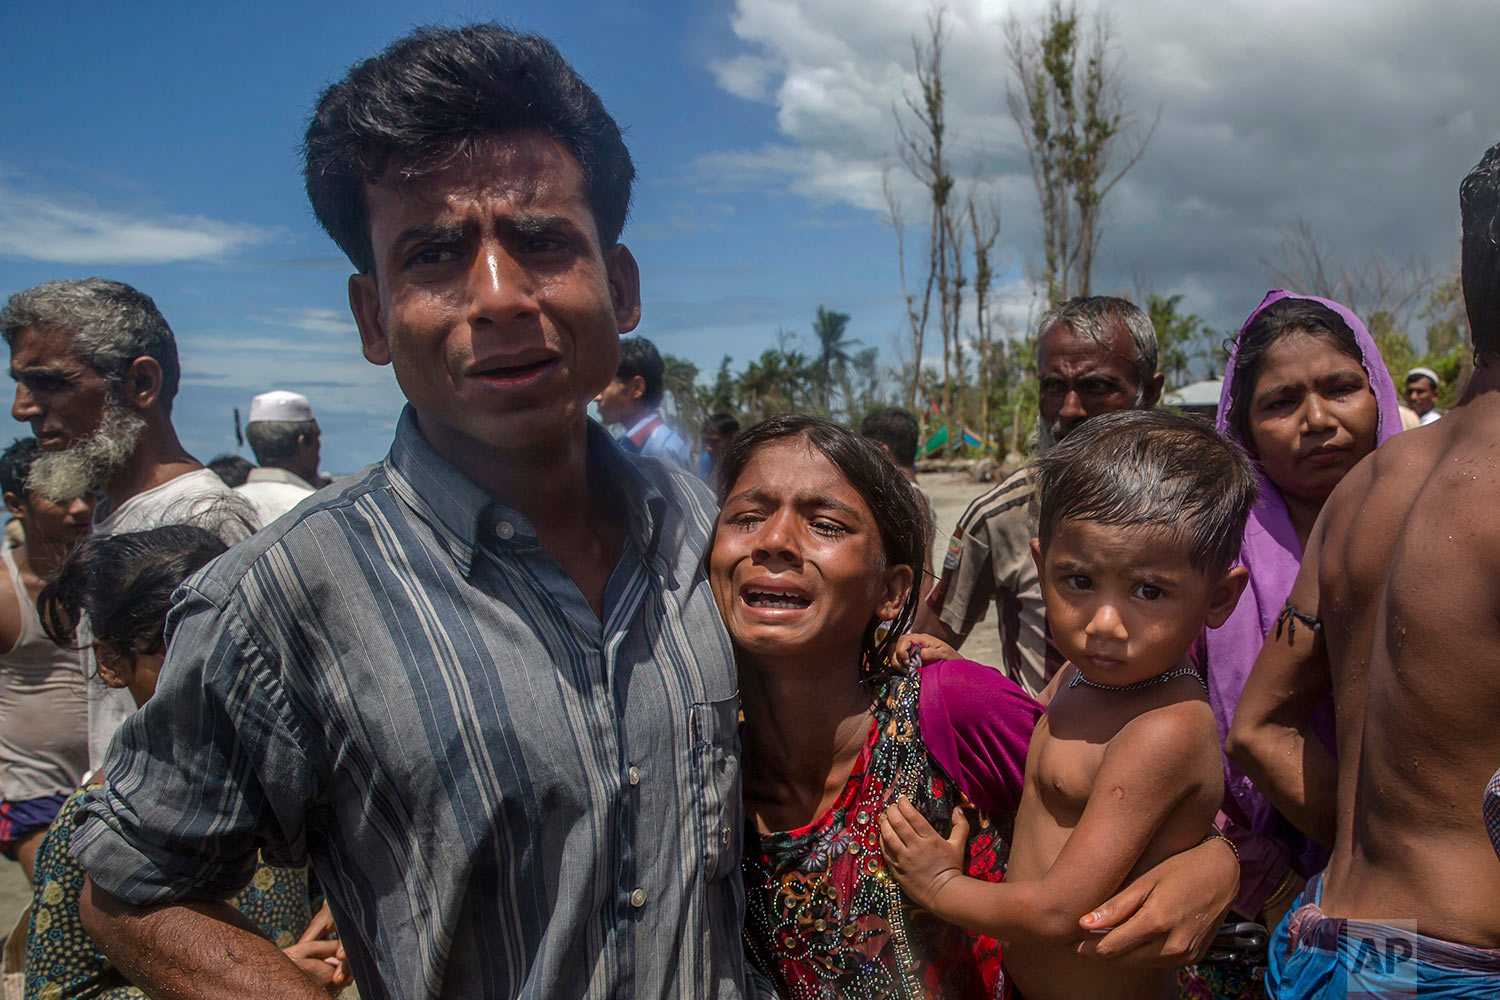 Rohingya Muslims, who crossed over from Myanmar into Bangladesh, mourn for a family member who drowned when the boat they were traveling in capsized minutes before reaching the shore, at Shah Porir Dwip, Bangladesh, Thursday, Sept. 14, 2017. (AP Photo/Dar Yasin)